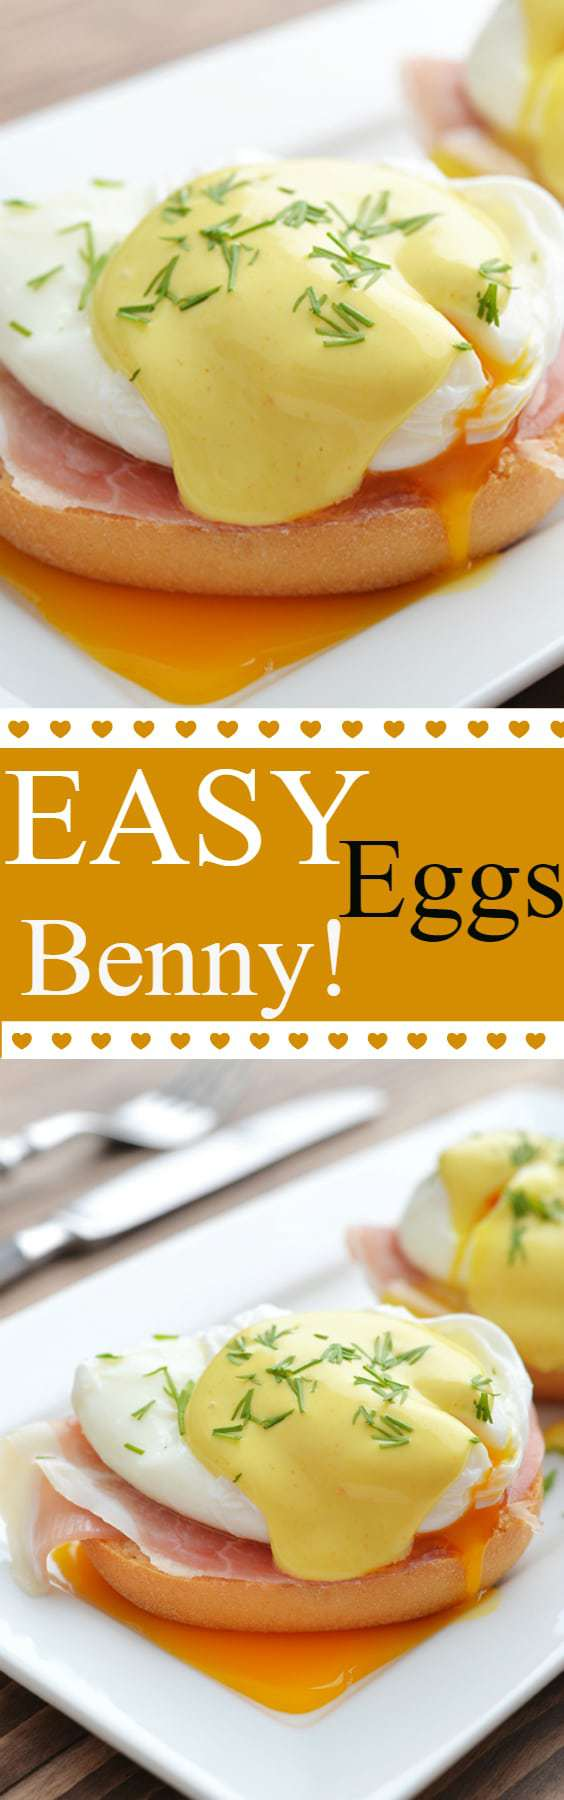 Easy Eggs Benedict Recipe - step by step directions how to make eggs Benny EASY! #eggs #benedict #brunch #breakfast